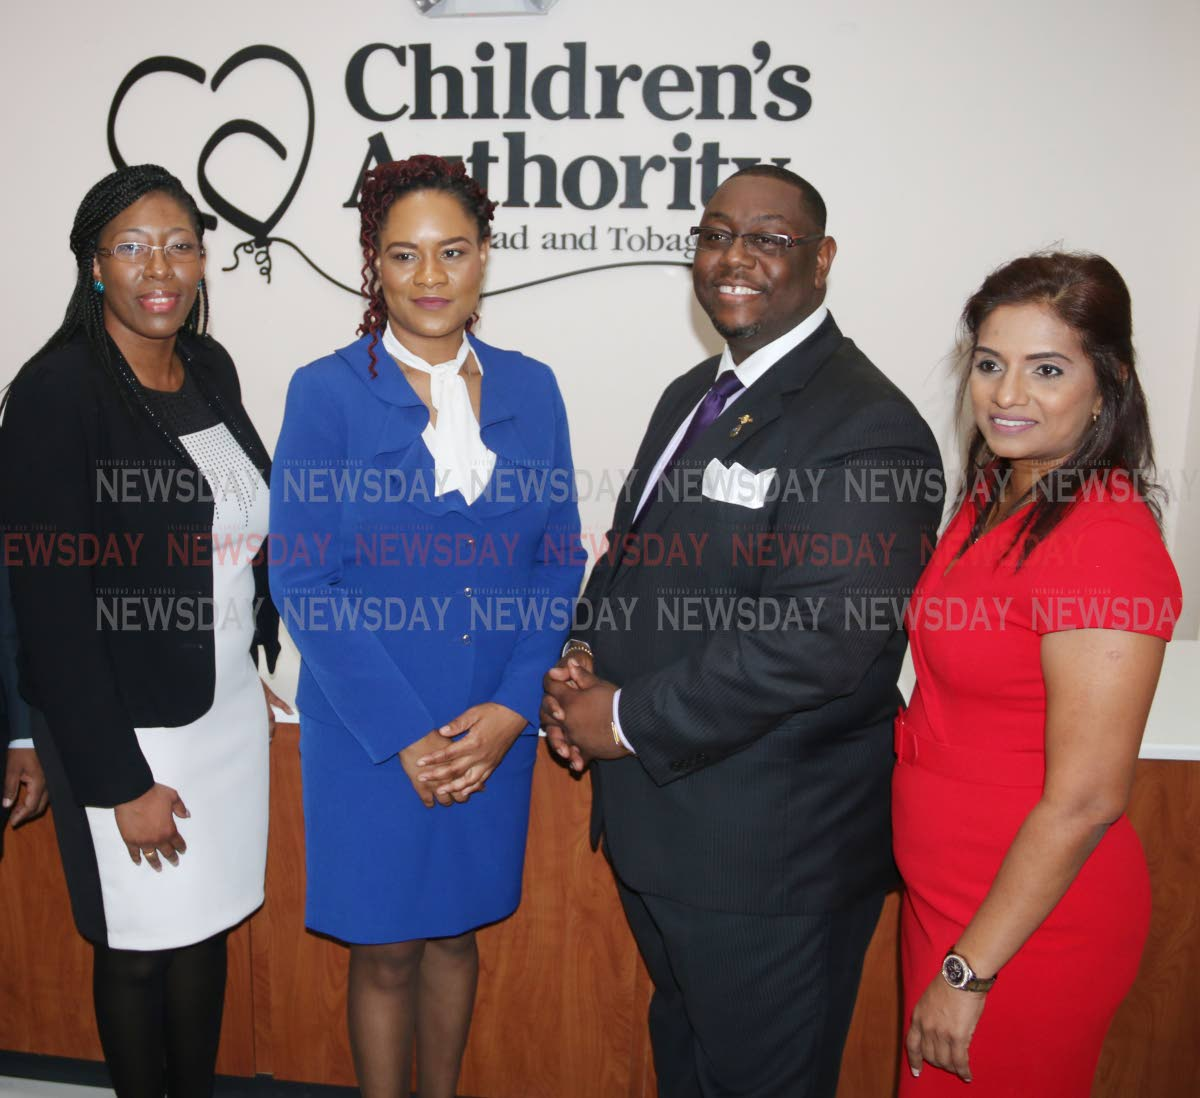 Safiya Noel Director of the Children's Authority (left) is seen standing along with Minister of State. Ofiicer of the Prime Minister Ayanna Webster-Roy (second from left), Hanif Benjamin Chairman of the Children's Authority, and Gail Sooknarine Deputy Director at the offical openning of the Children's Authority South Regional Office in Ste Madeleine PHOTO BY: ANSEL JEBODH